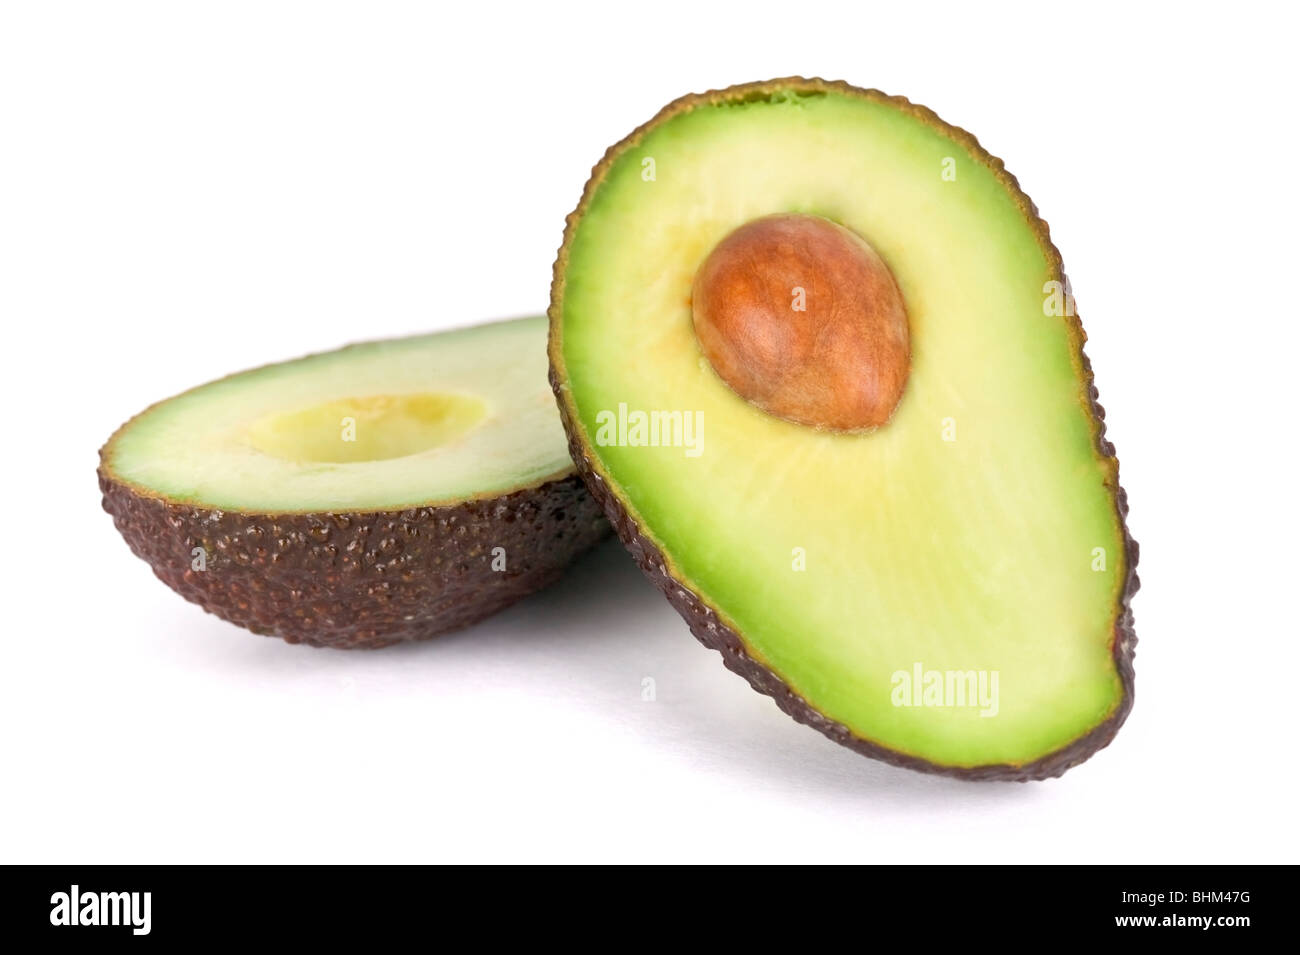 Two avocado halves on plain white background, one half with the stone/core. - Stock Image